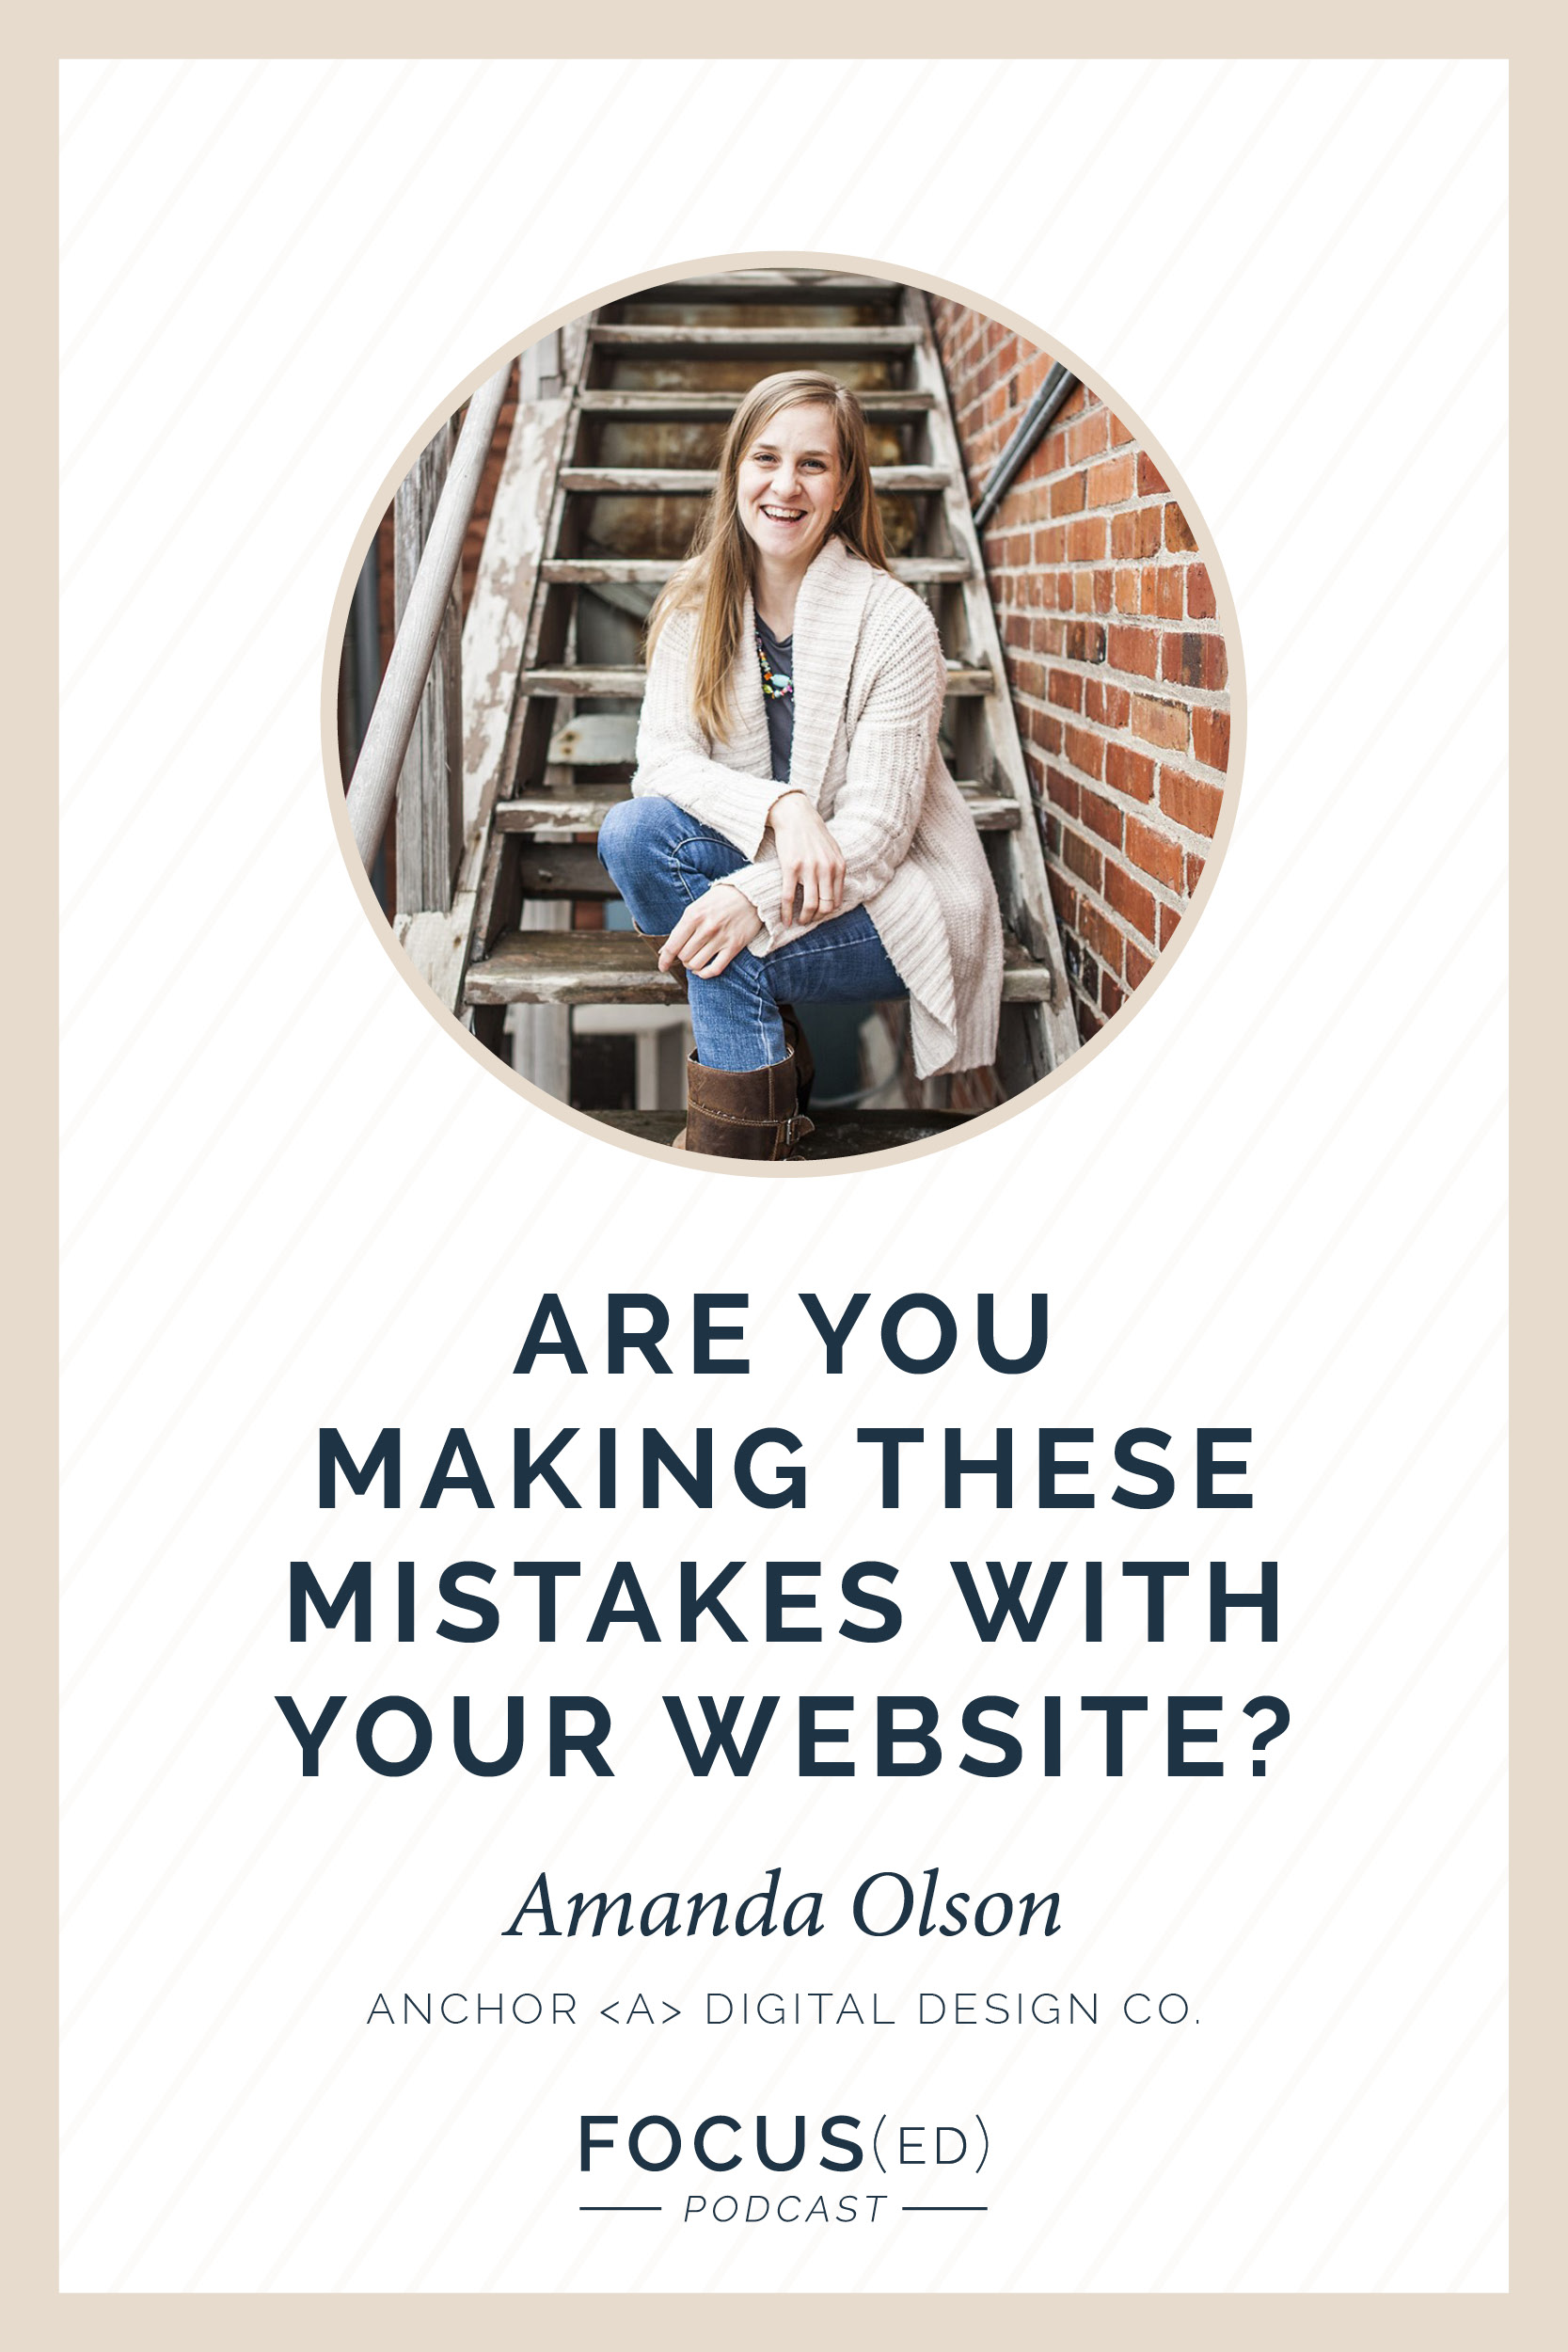 Are you making these mistakes with your website? Amanda Olson, Anchor <A> Designs | Focus(ed) Podcast